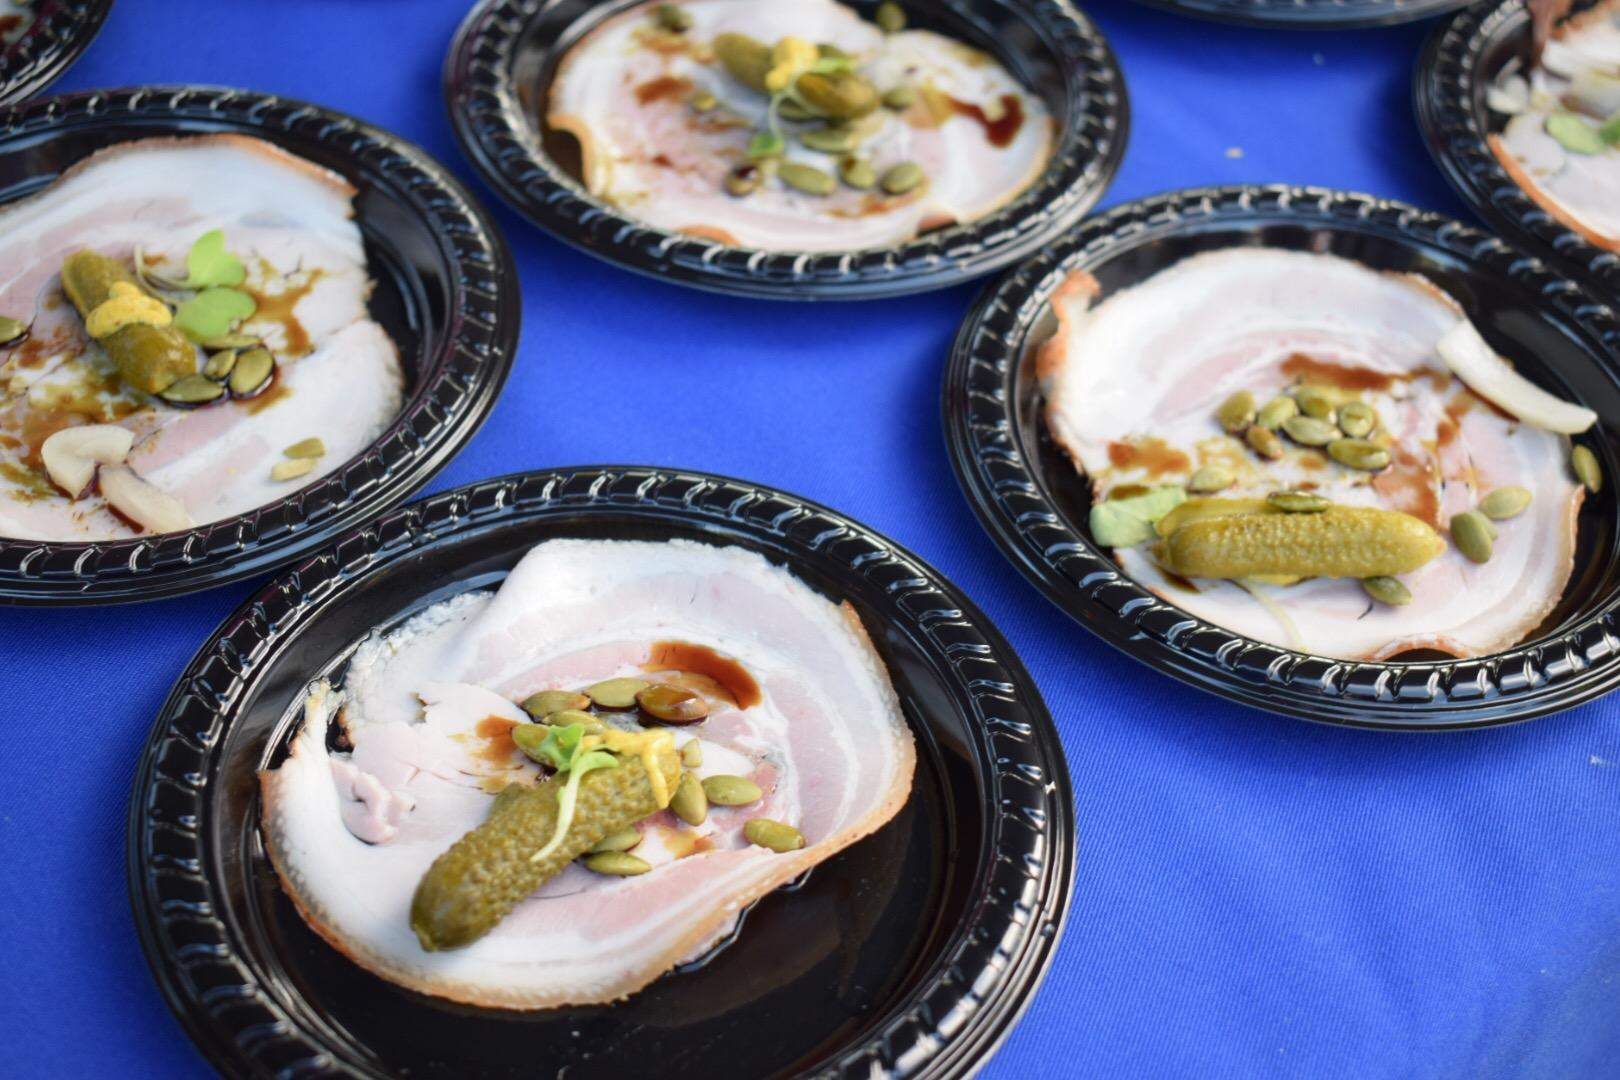 Prochetta wraps by Chef Austin Fausett were one of the many tastes available to sample.{ }(Image: Tim Ebner / DC Refined)